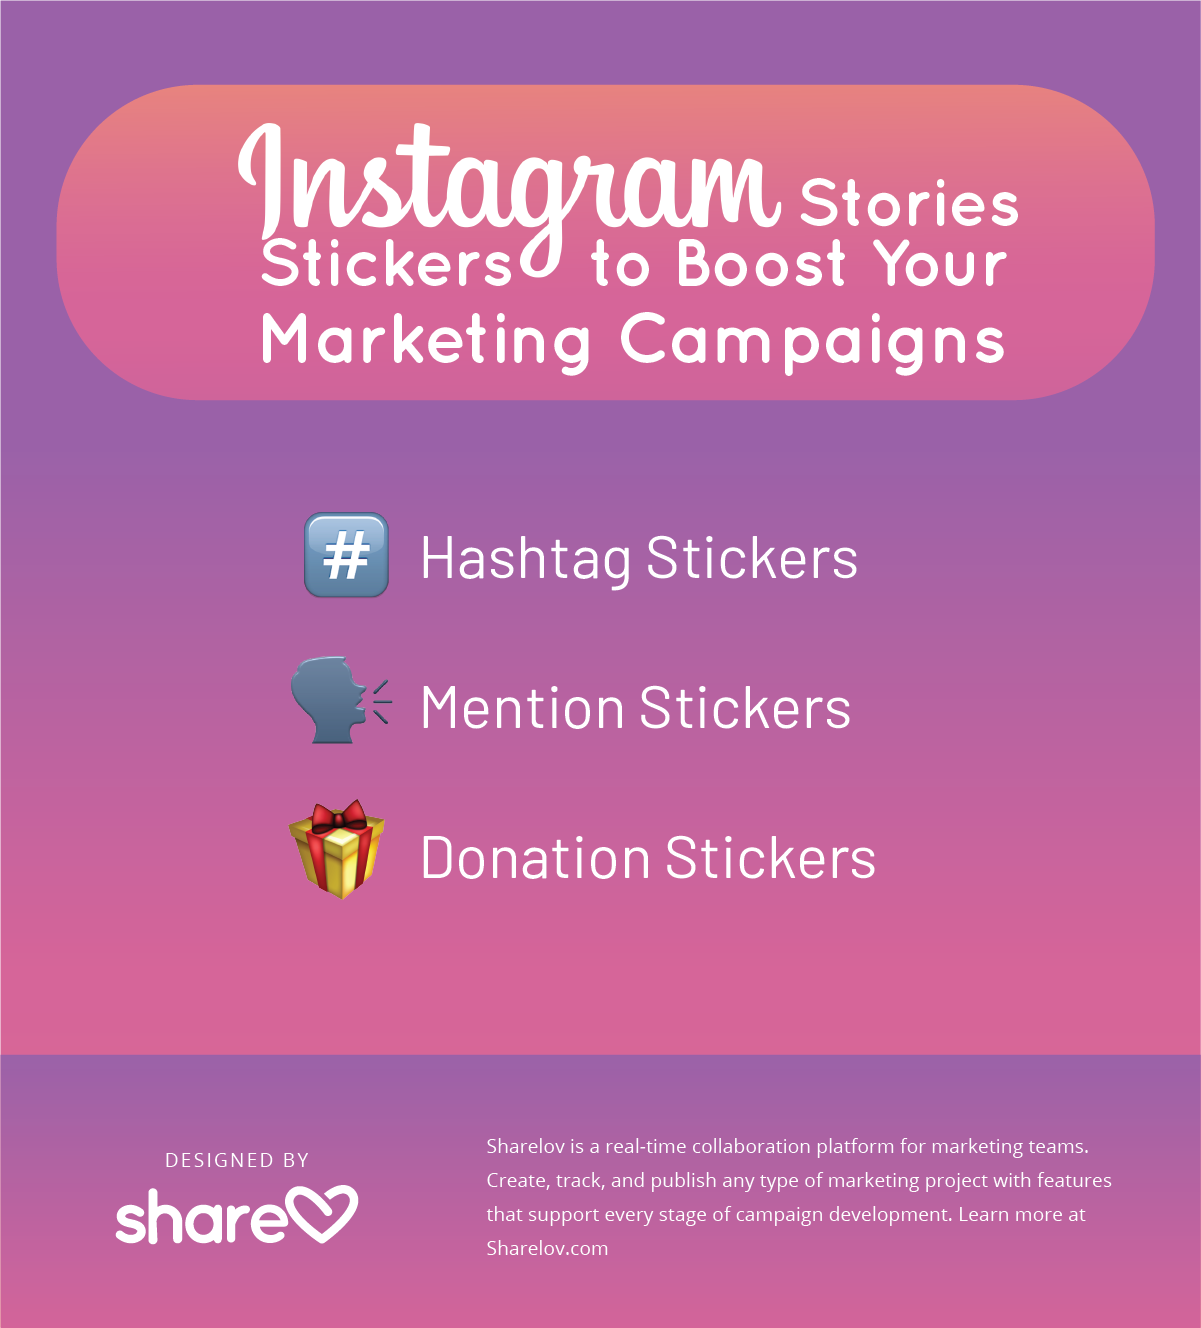 Instagram Stories Stickers to Boost Your Marketing Campaigns